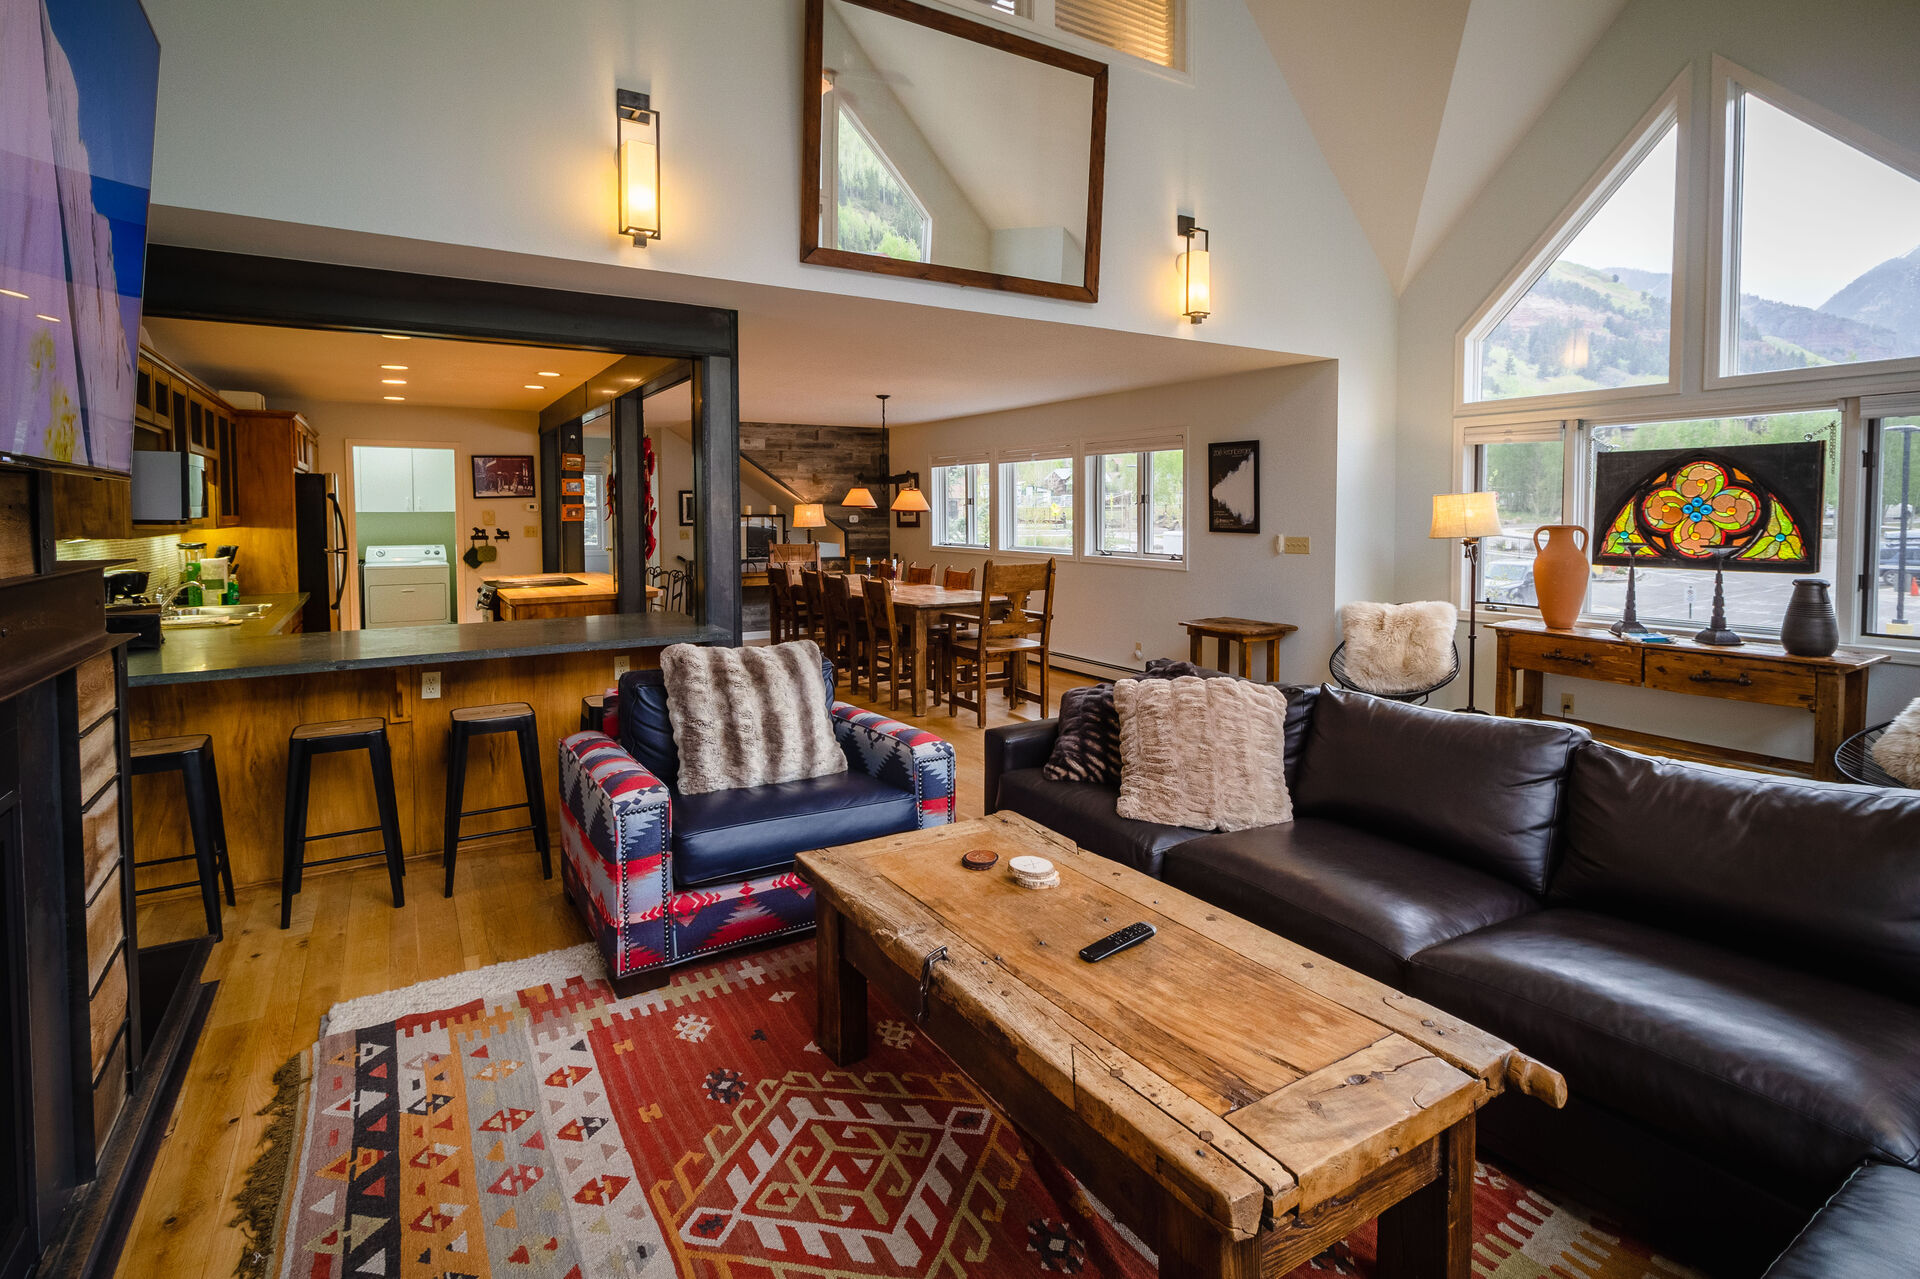 Living area with views into Kitchen and Dining area